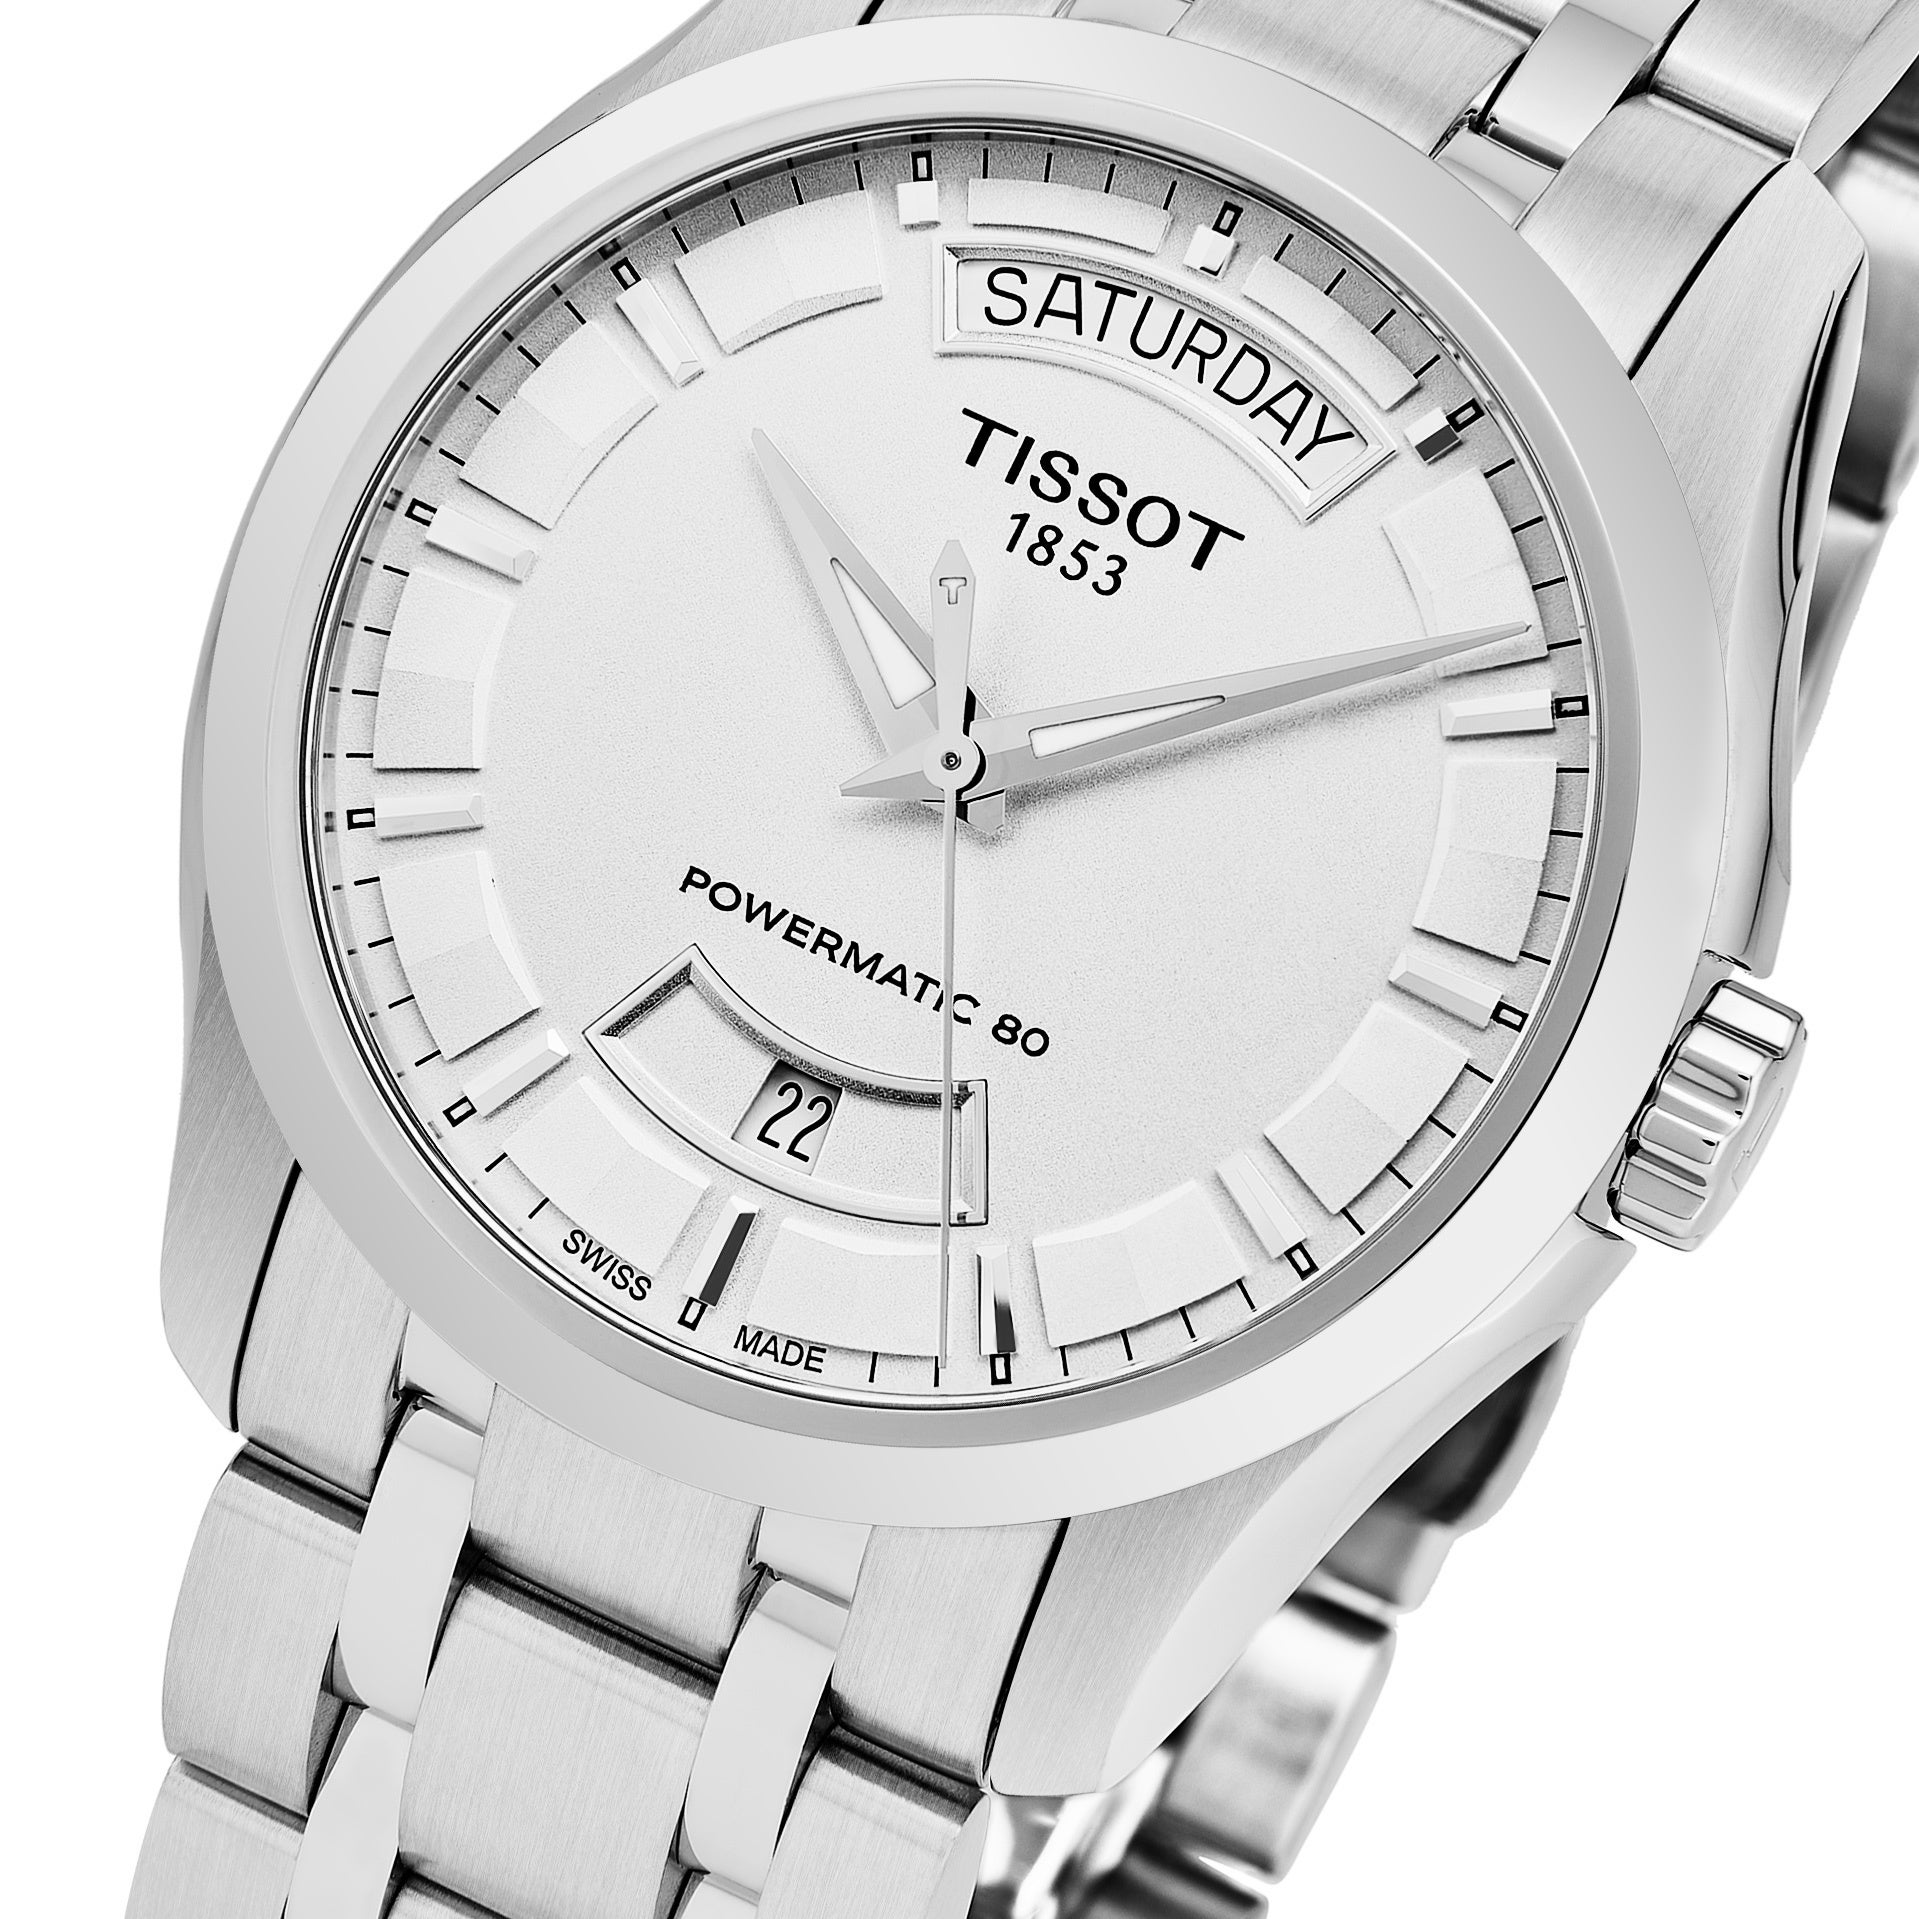 Tissot Men's T035 407 11 031 01 'Couturier' Silver Dial Stainless Steel  Swiss Automatic Watch